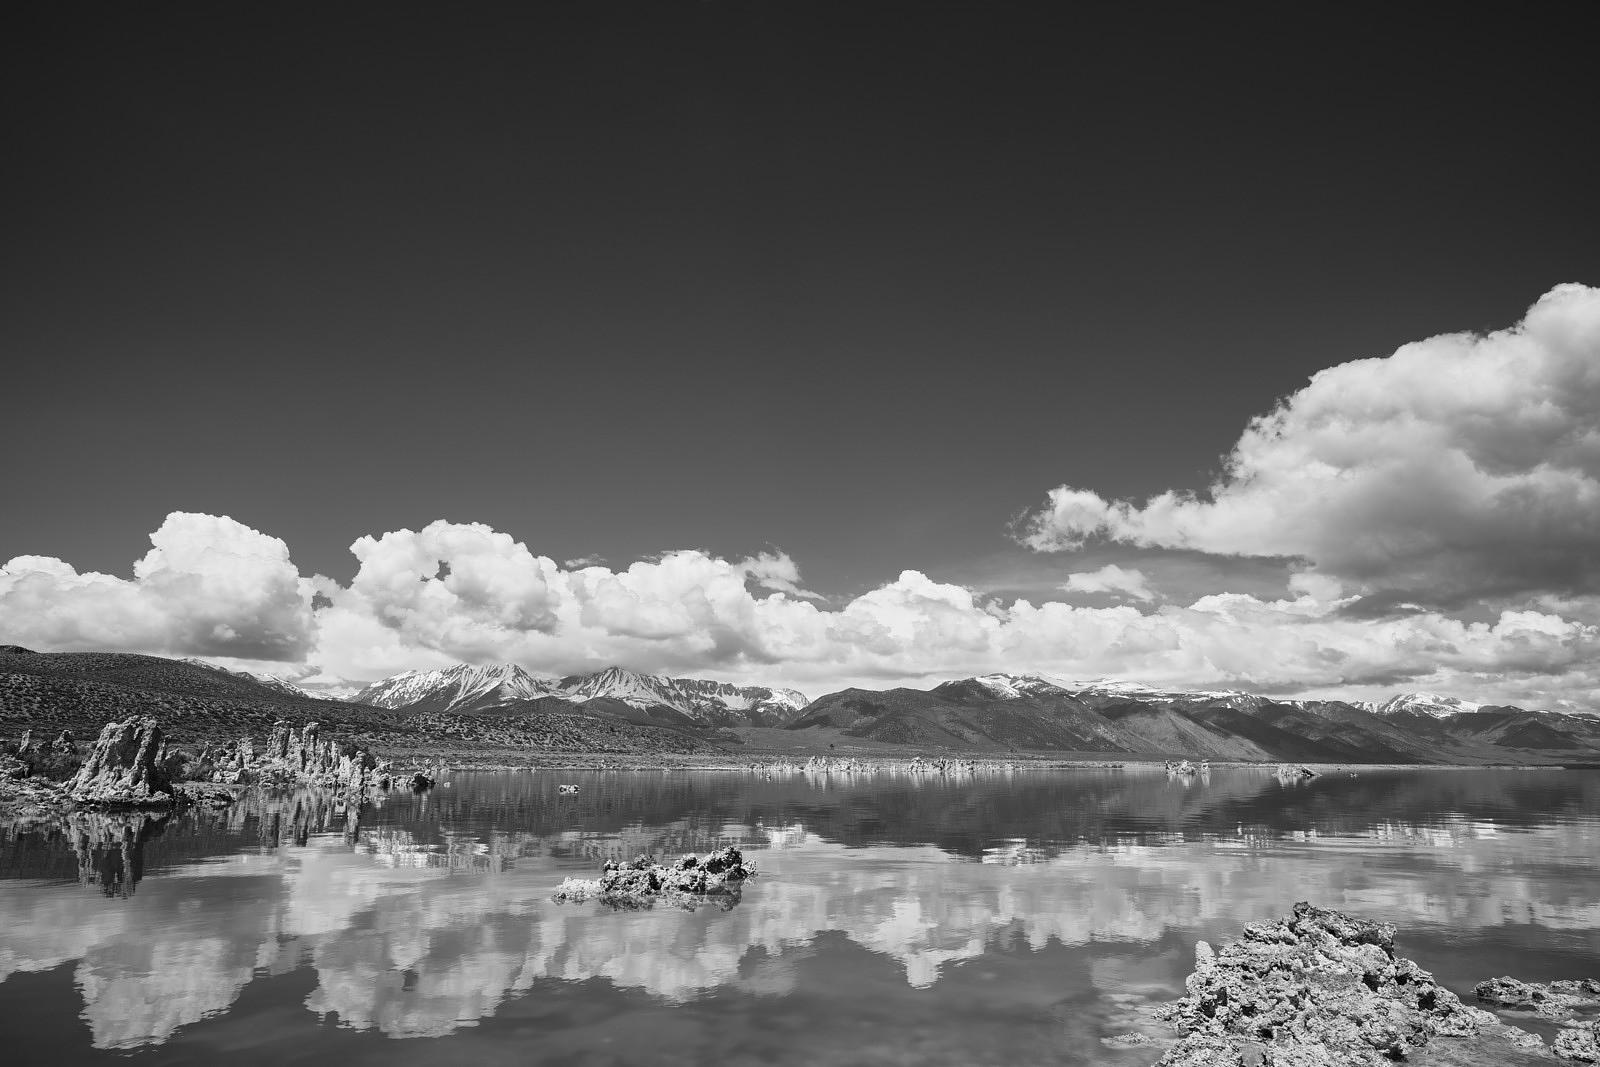 Mono Lake - Black and White Landscape Photograph